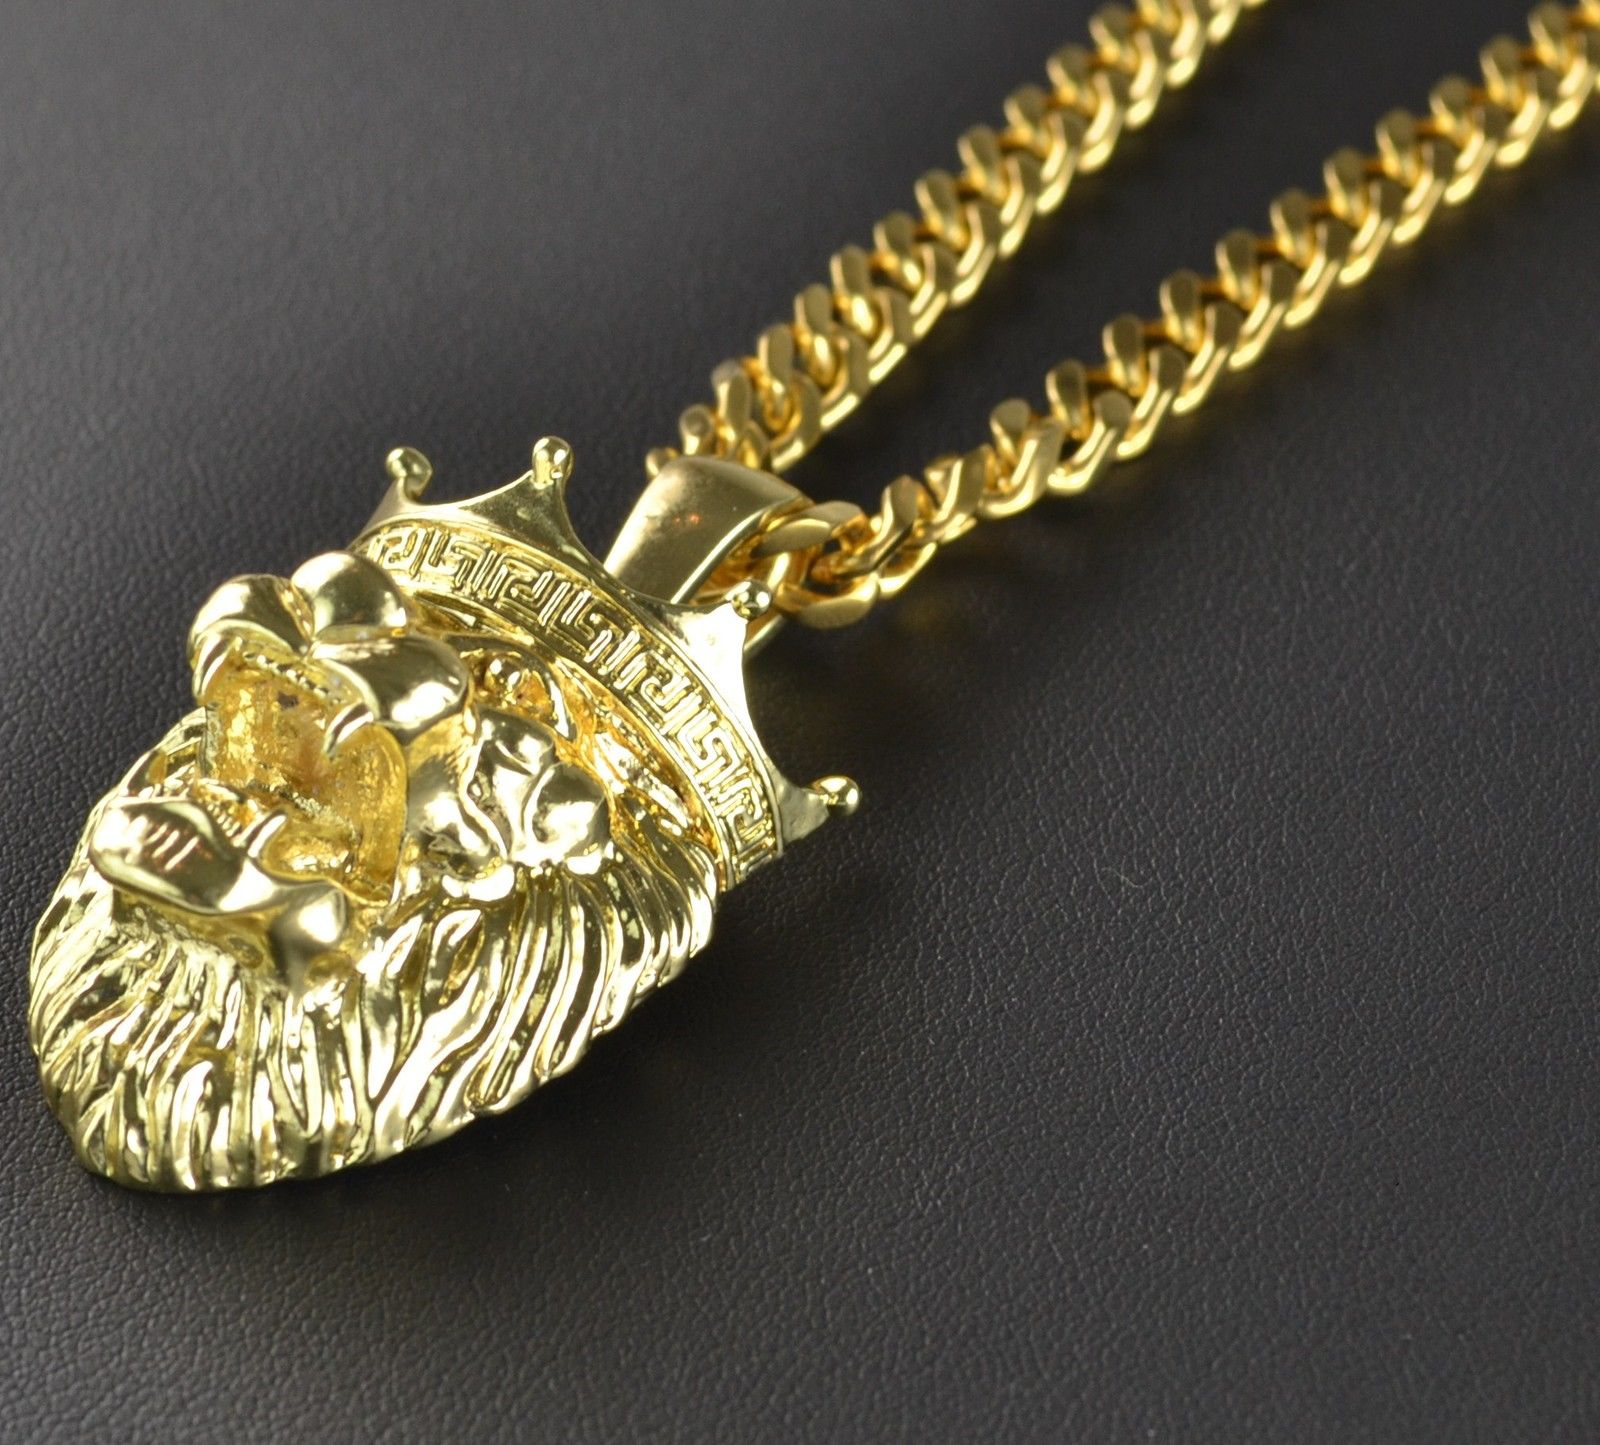 p van arpels lion pendant emerald cleef gold yellow necklace